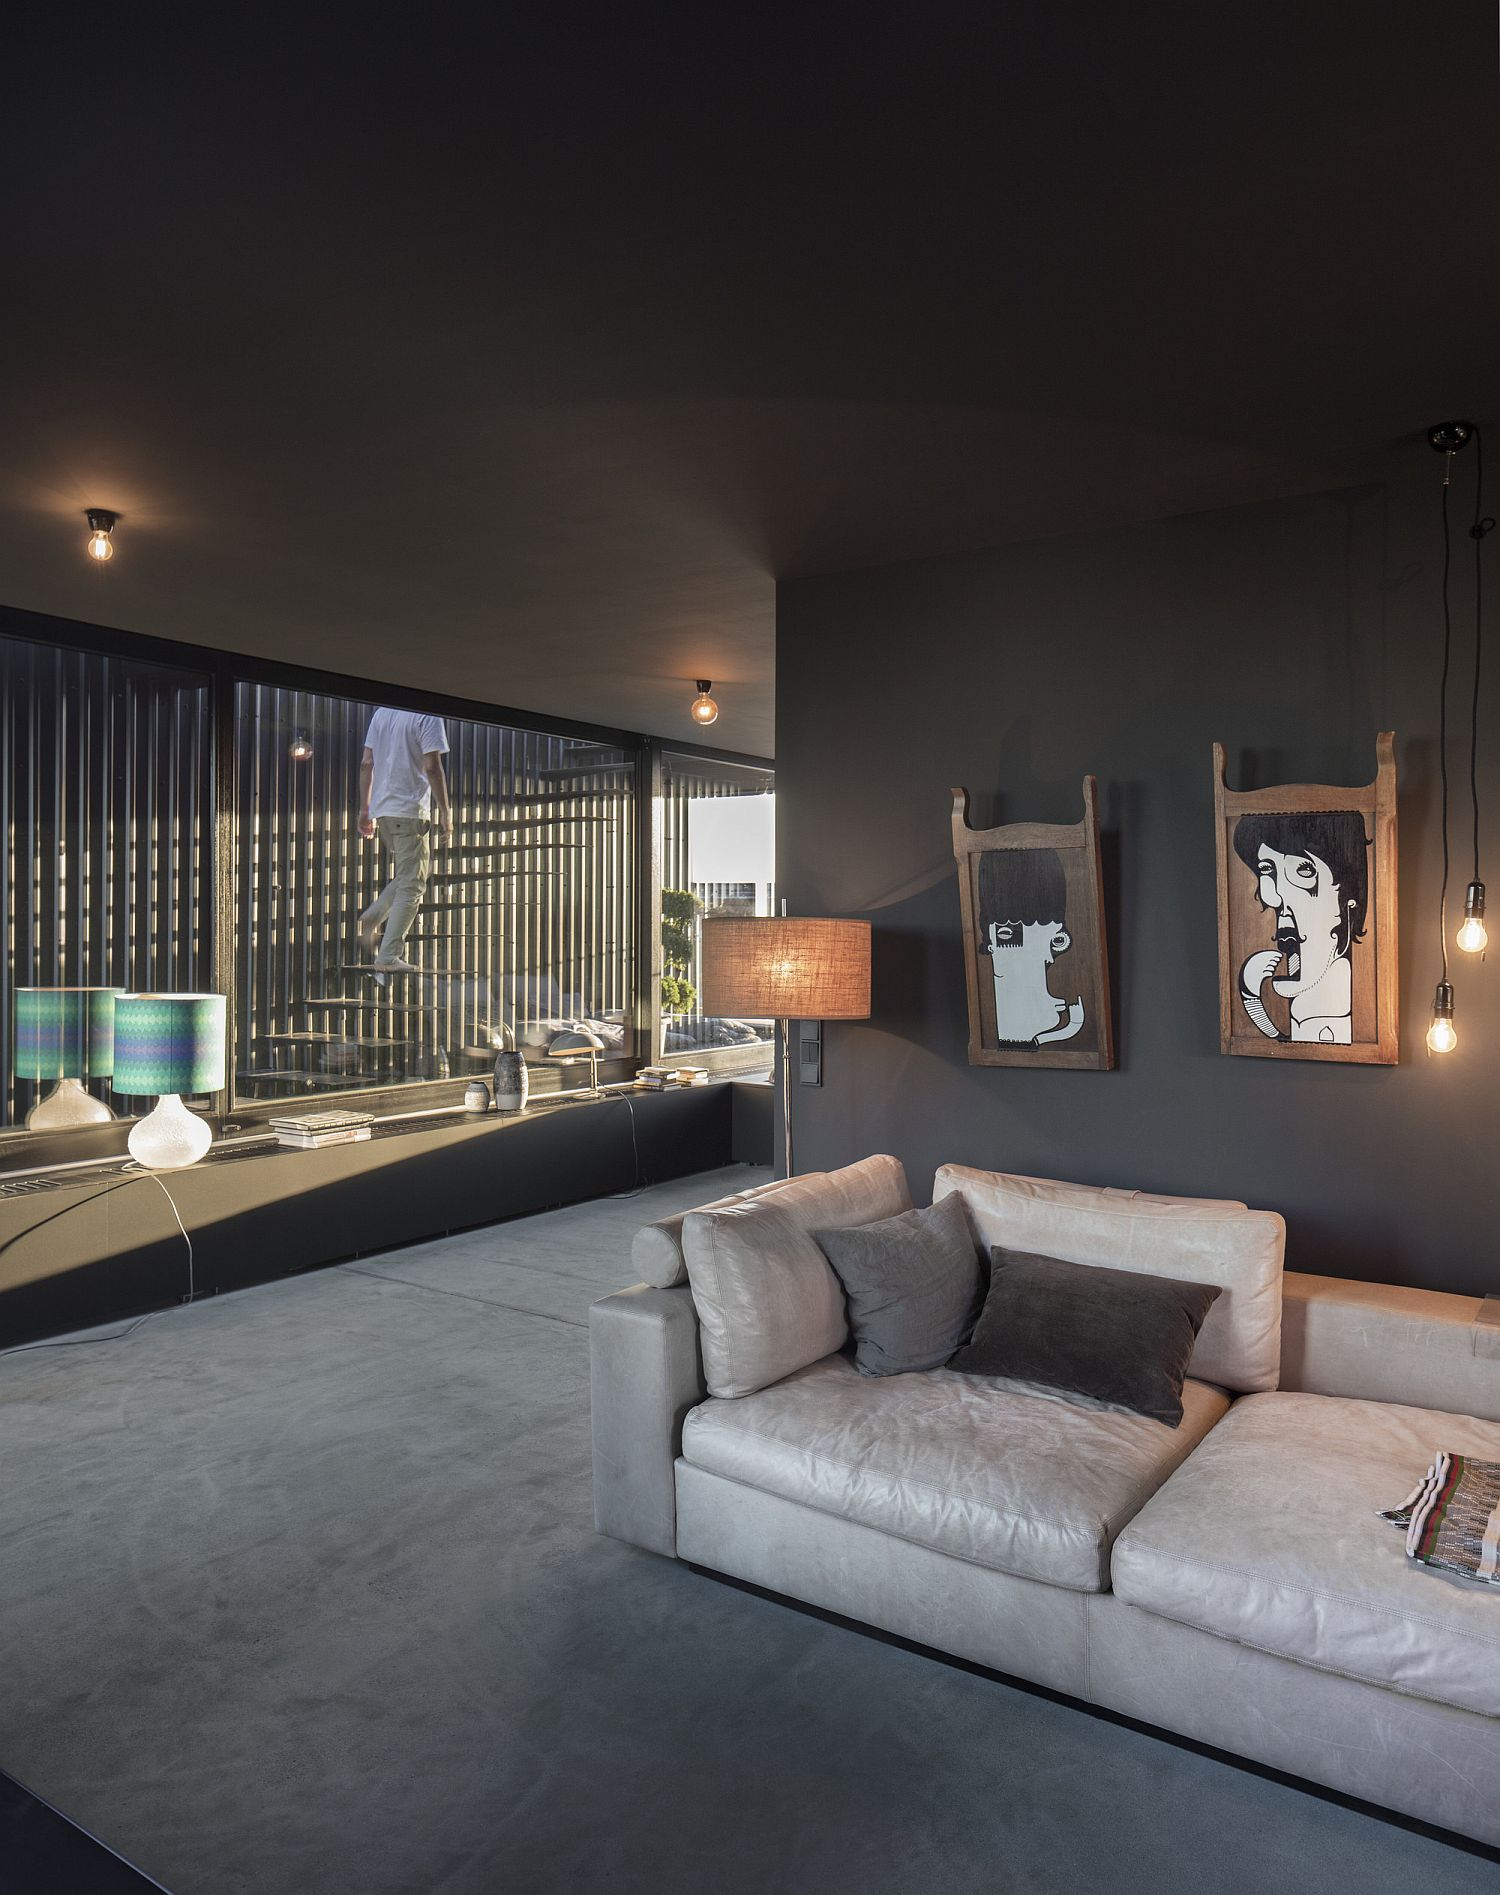 Dark-gray-and-black-give-the-penthouse-interior-a-unique-sophisticated-vibe